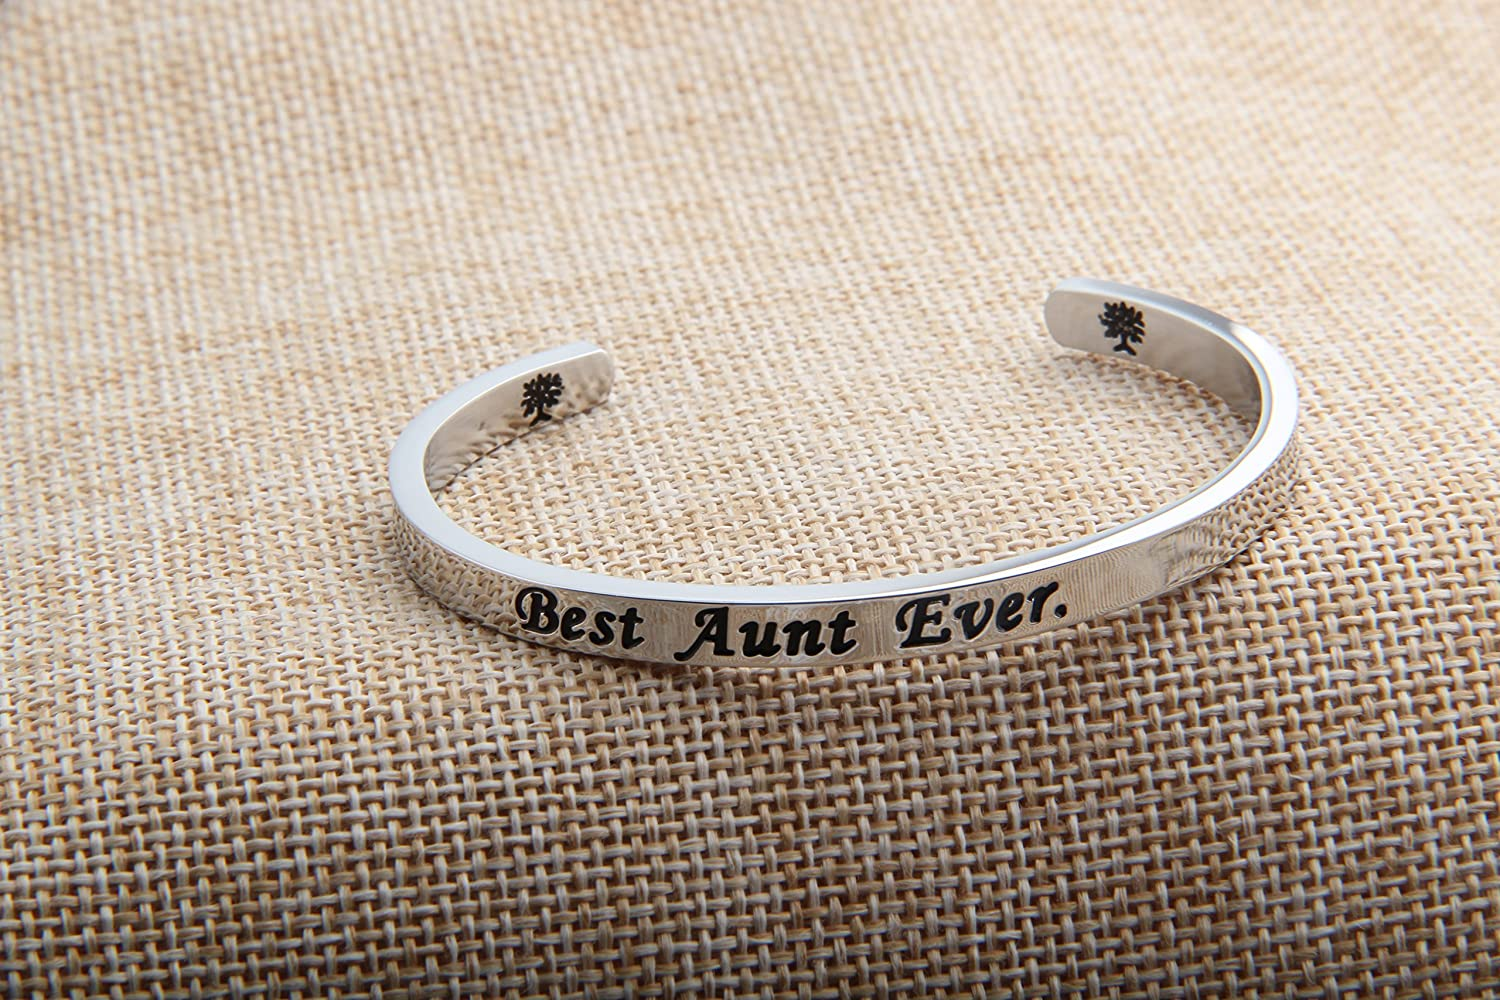 FEELMEM Gift for Aunt Best Aunt Ever Cuff Bangle Bracelet,Aunt Jewelry,Bracelets for Aunts,Birthday Gift for Auntie from Nephew Niece